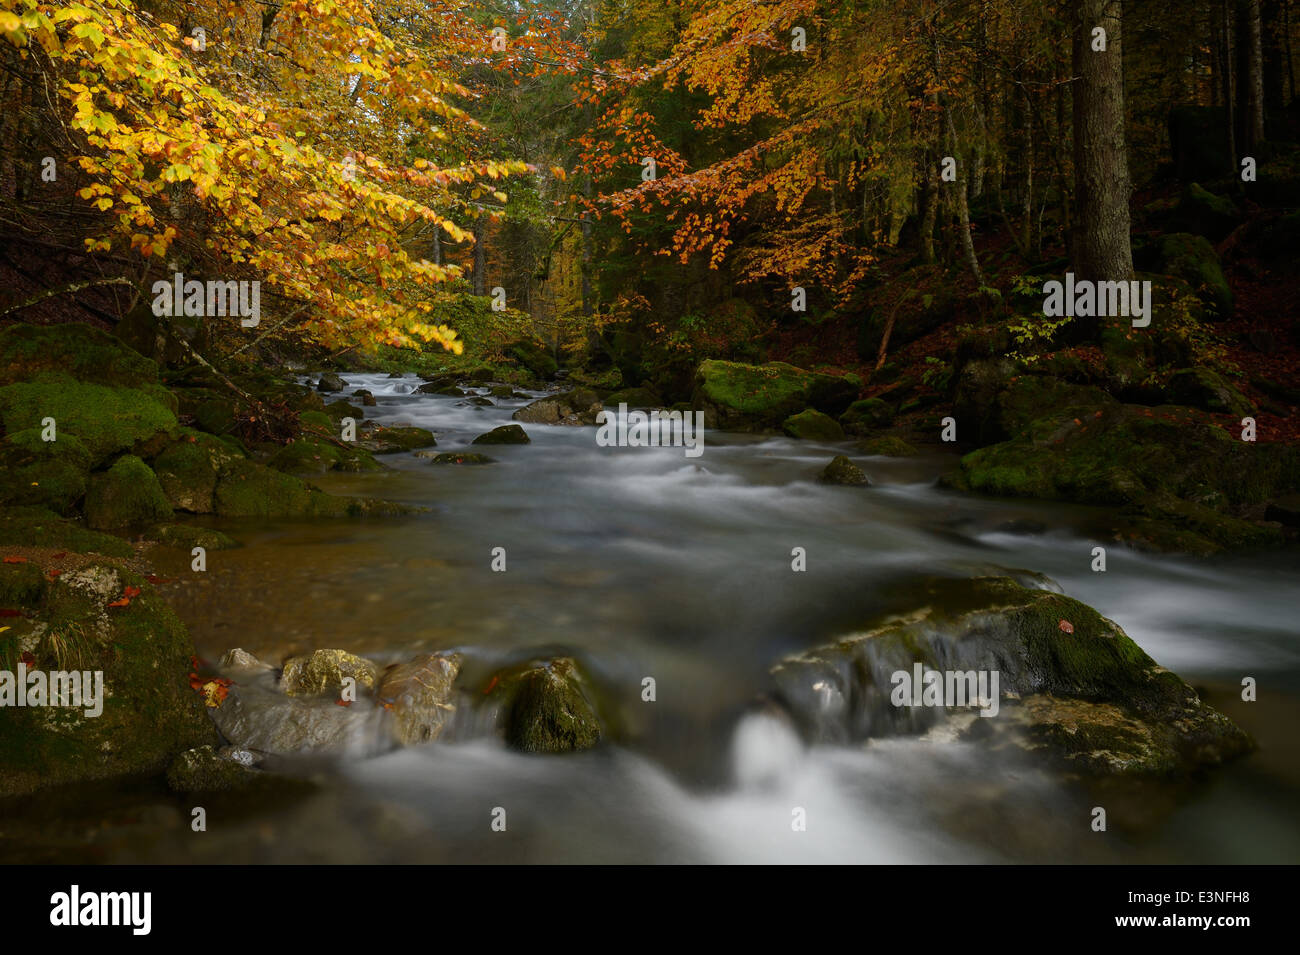 Forest with mountainstream and autumnal colors. - Stock Image